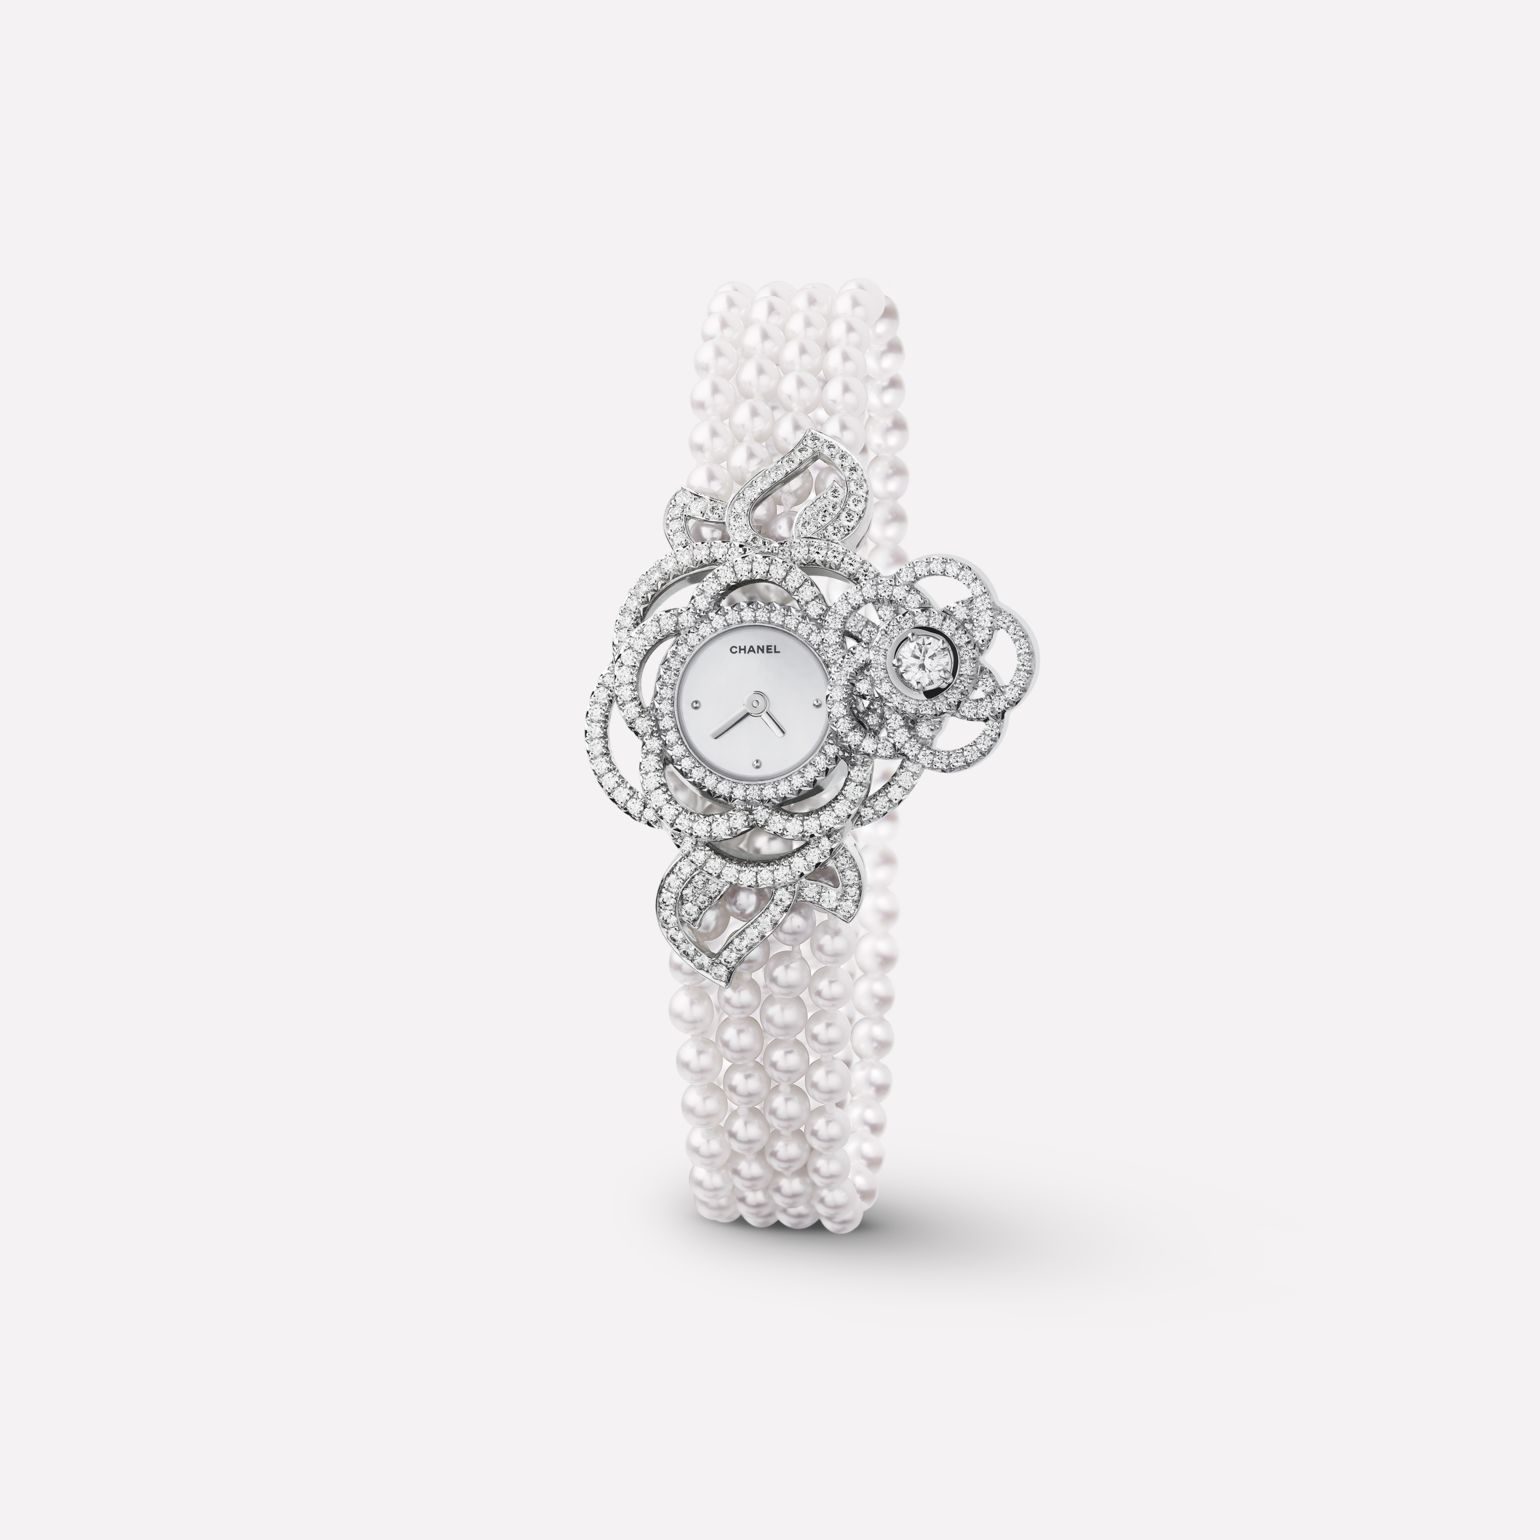 Camélia Jewellery Watch Secret watch with Camélia Brodé motif in 18K white gold, diamonds and cultured pearls. Medium version.